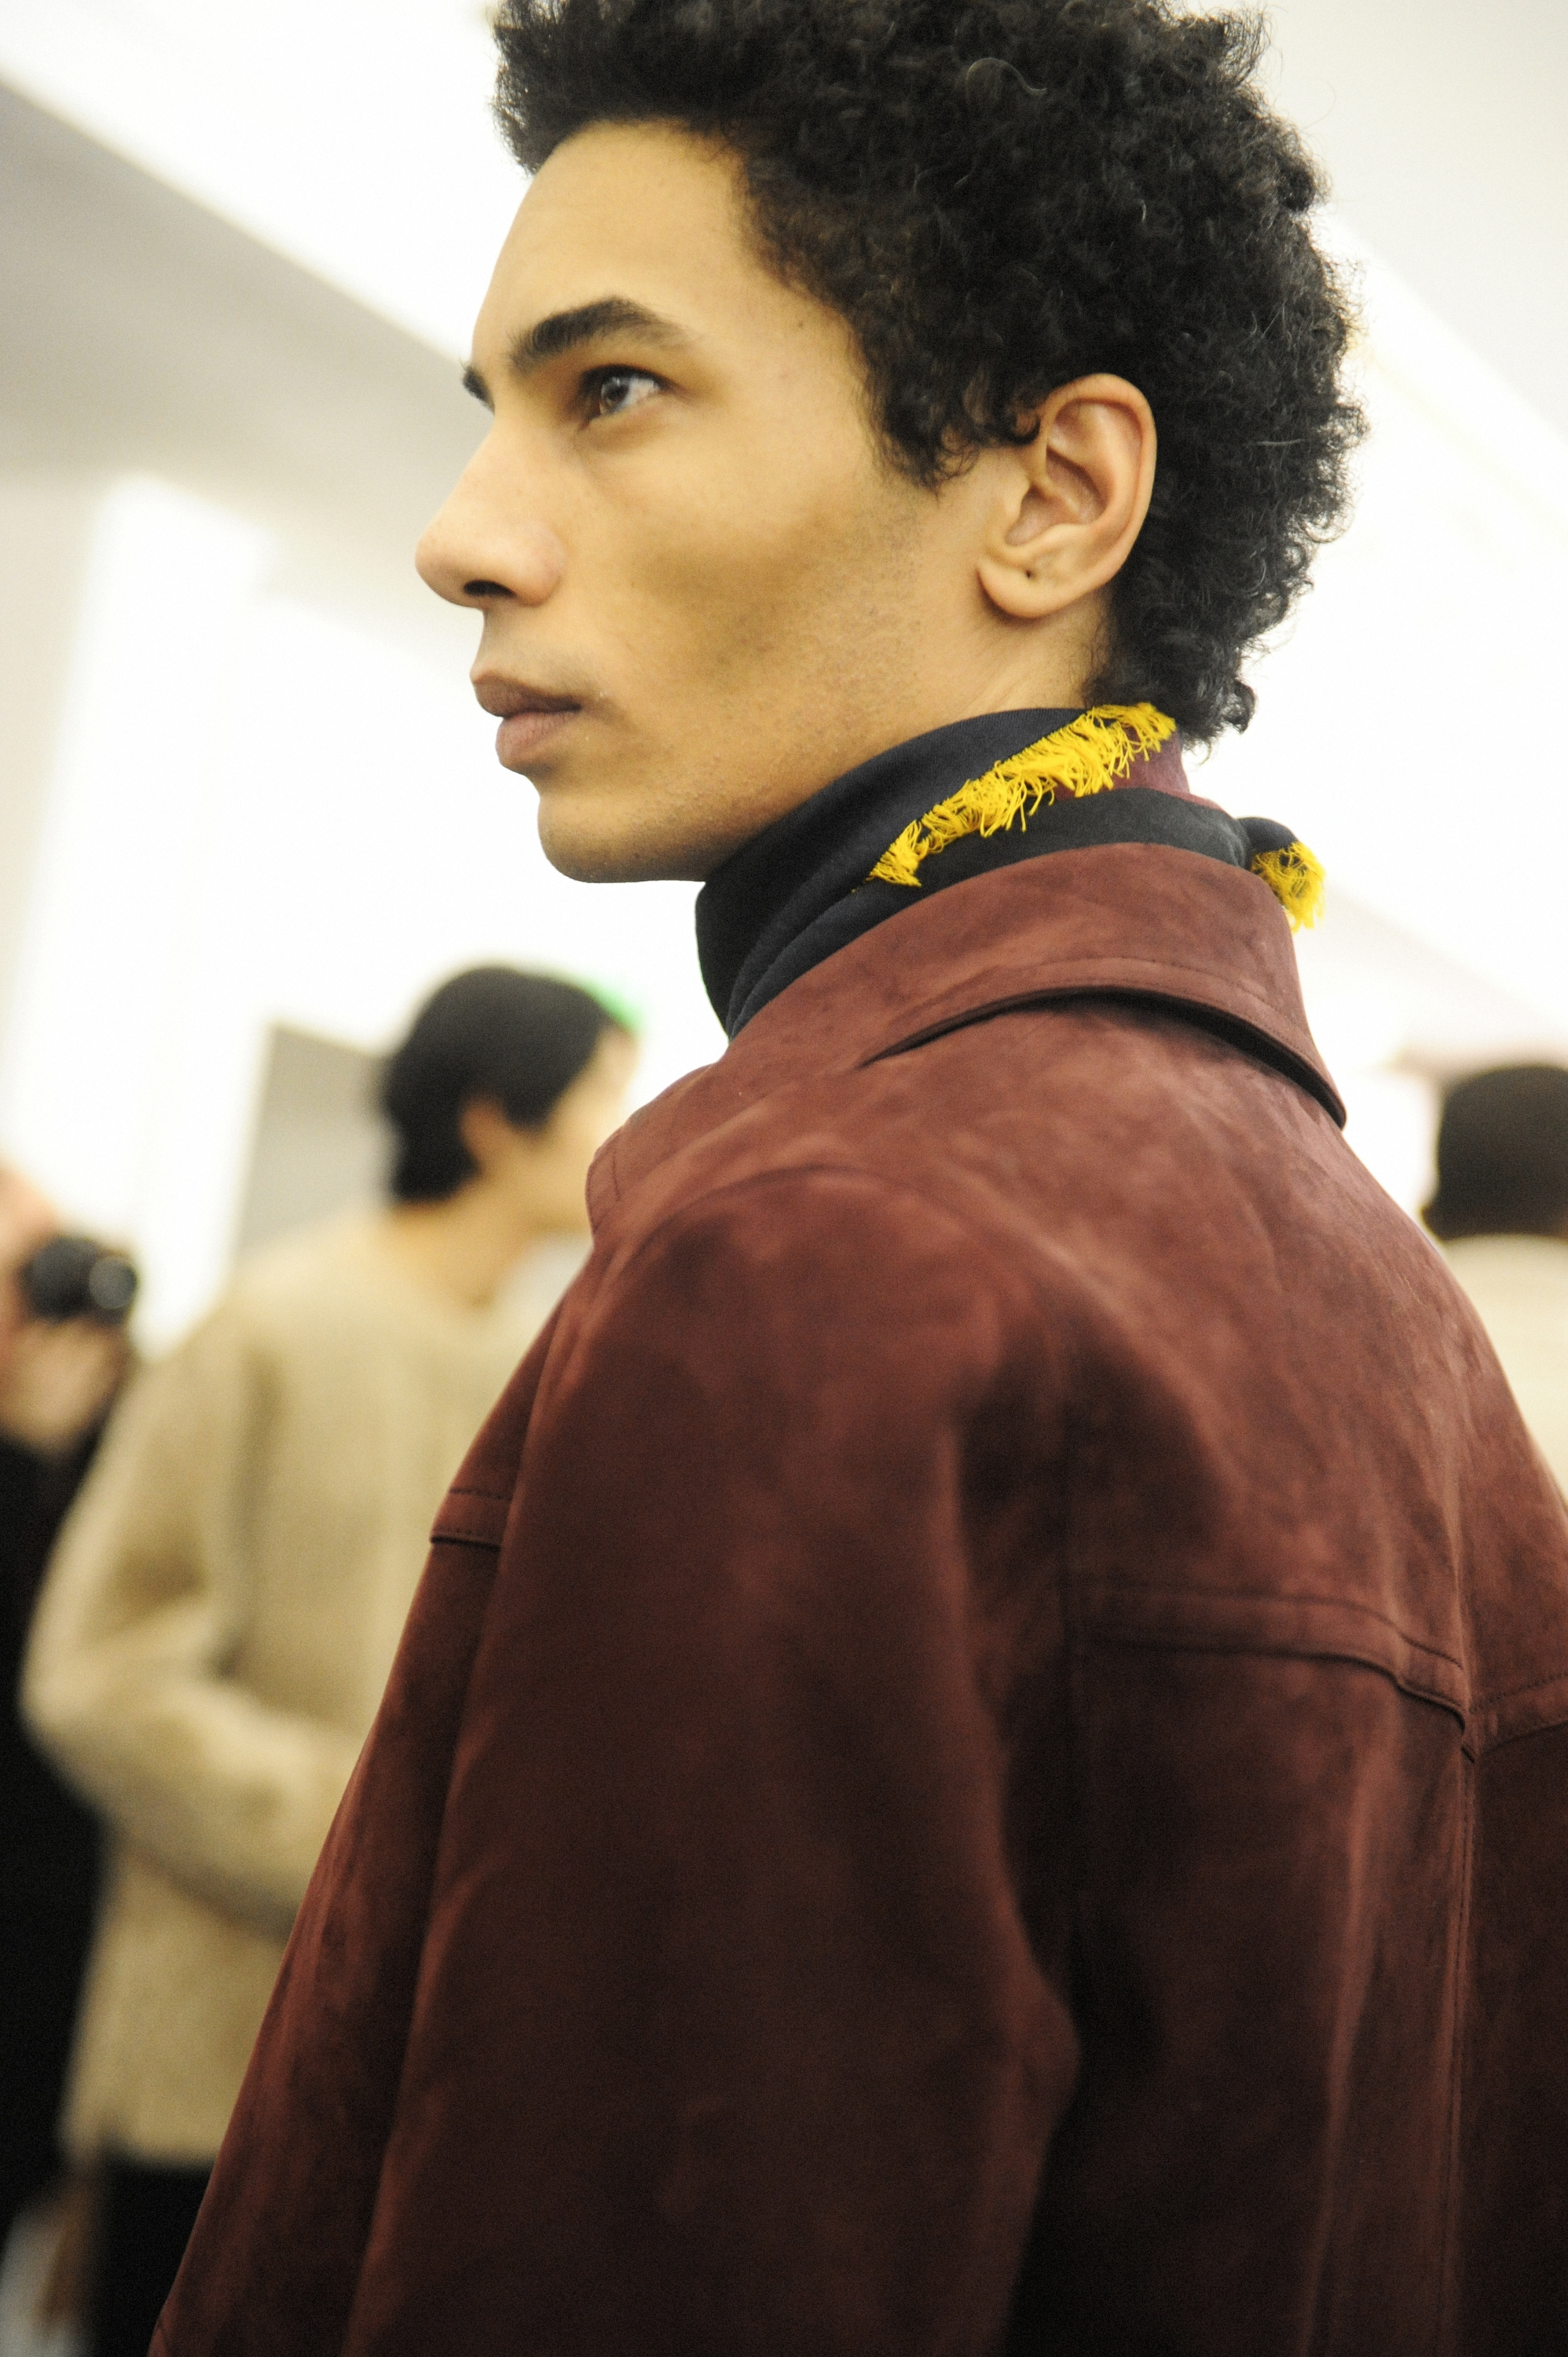 BACKSTAGE AT HERMES MENSWEAR FALL WINTER 2017/18 COLLECTION PARIS